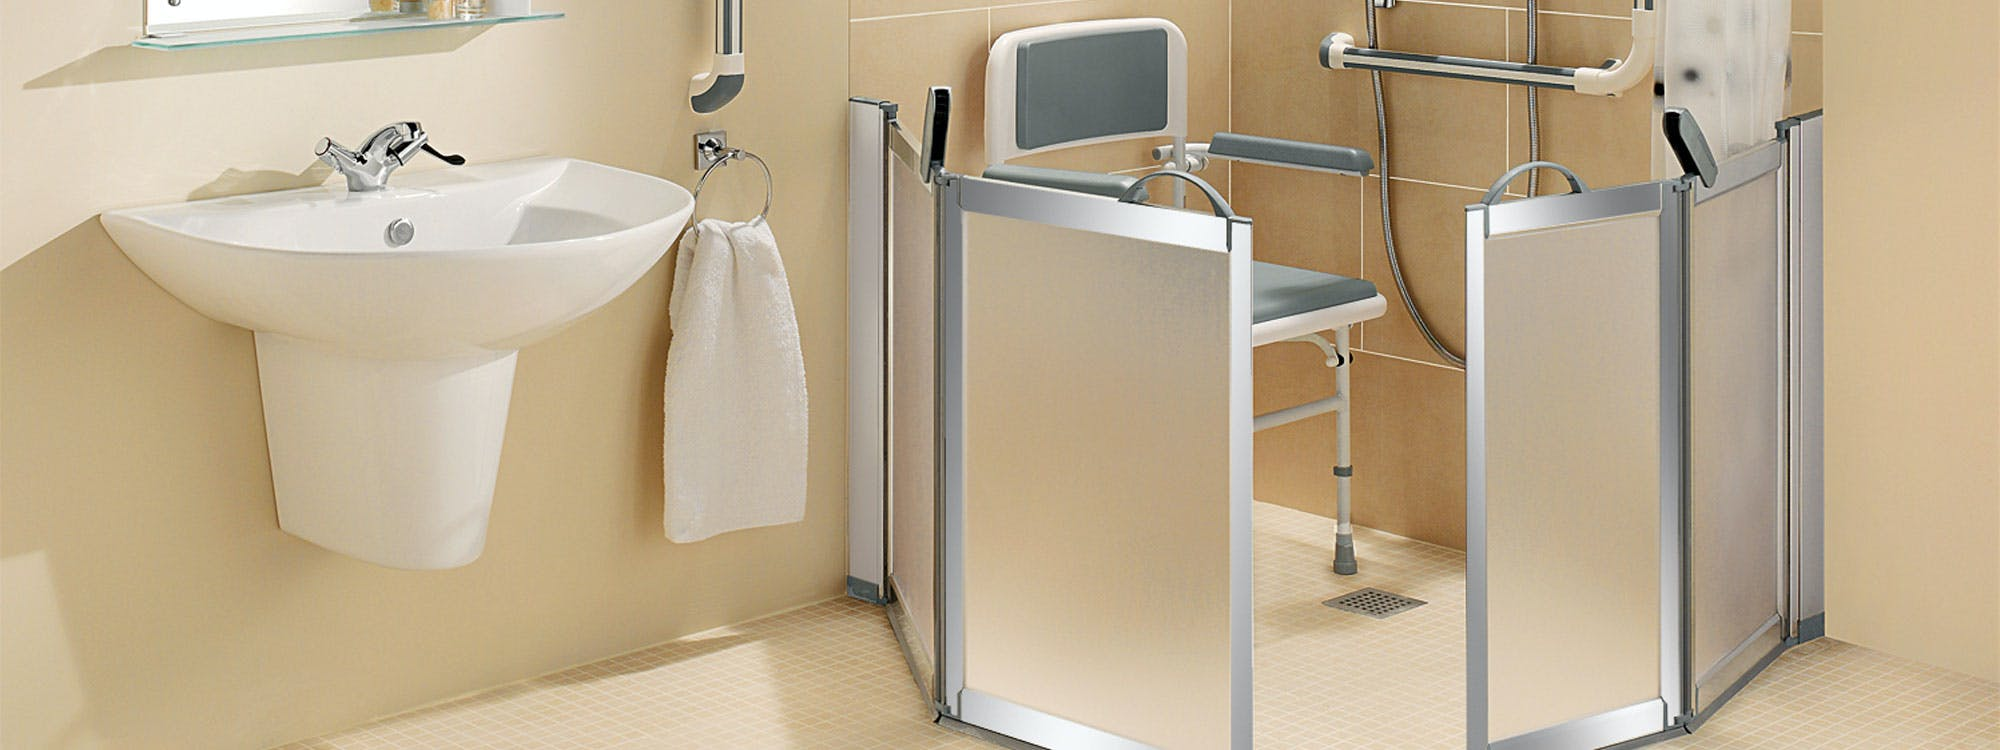 Purposefully designed and built to meet your individual wants, needs and requirements our disabled wet room solutions provide the ultimate showering experience for the less-abled, handicapped and physically impaired.